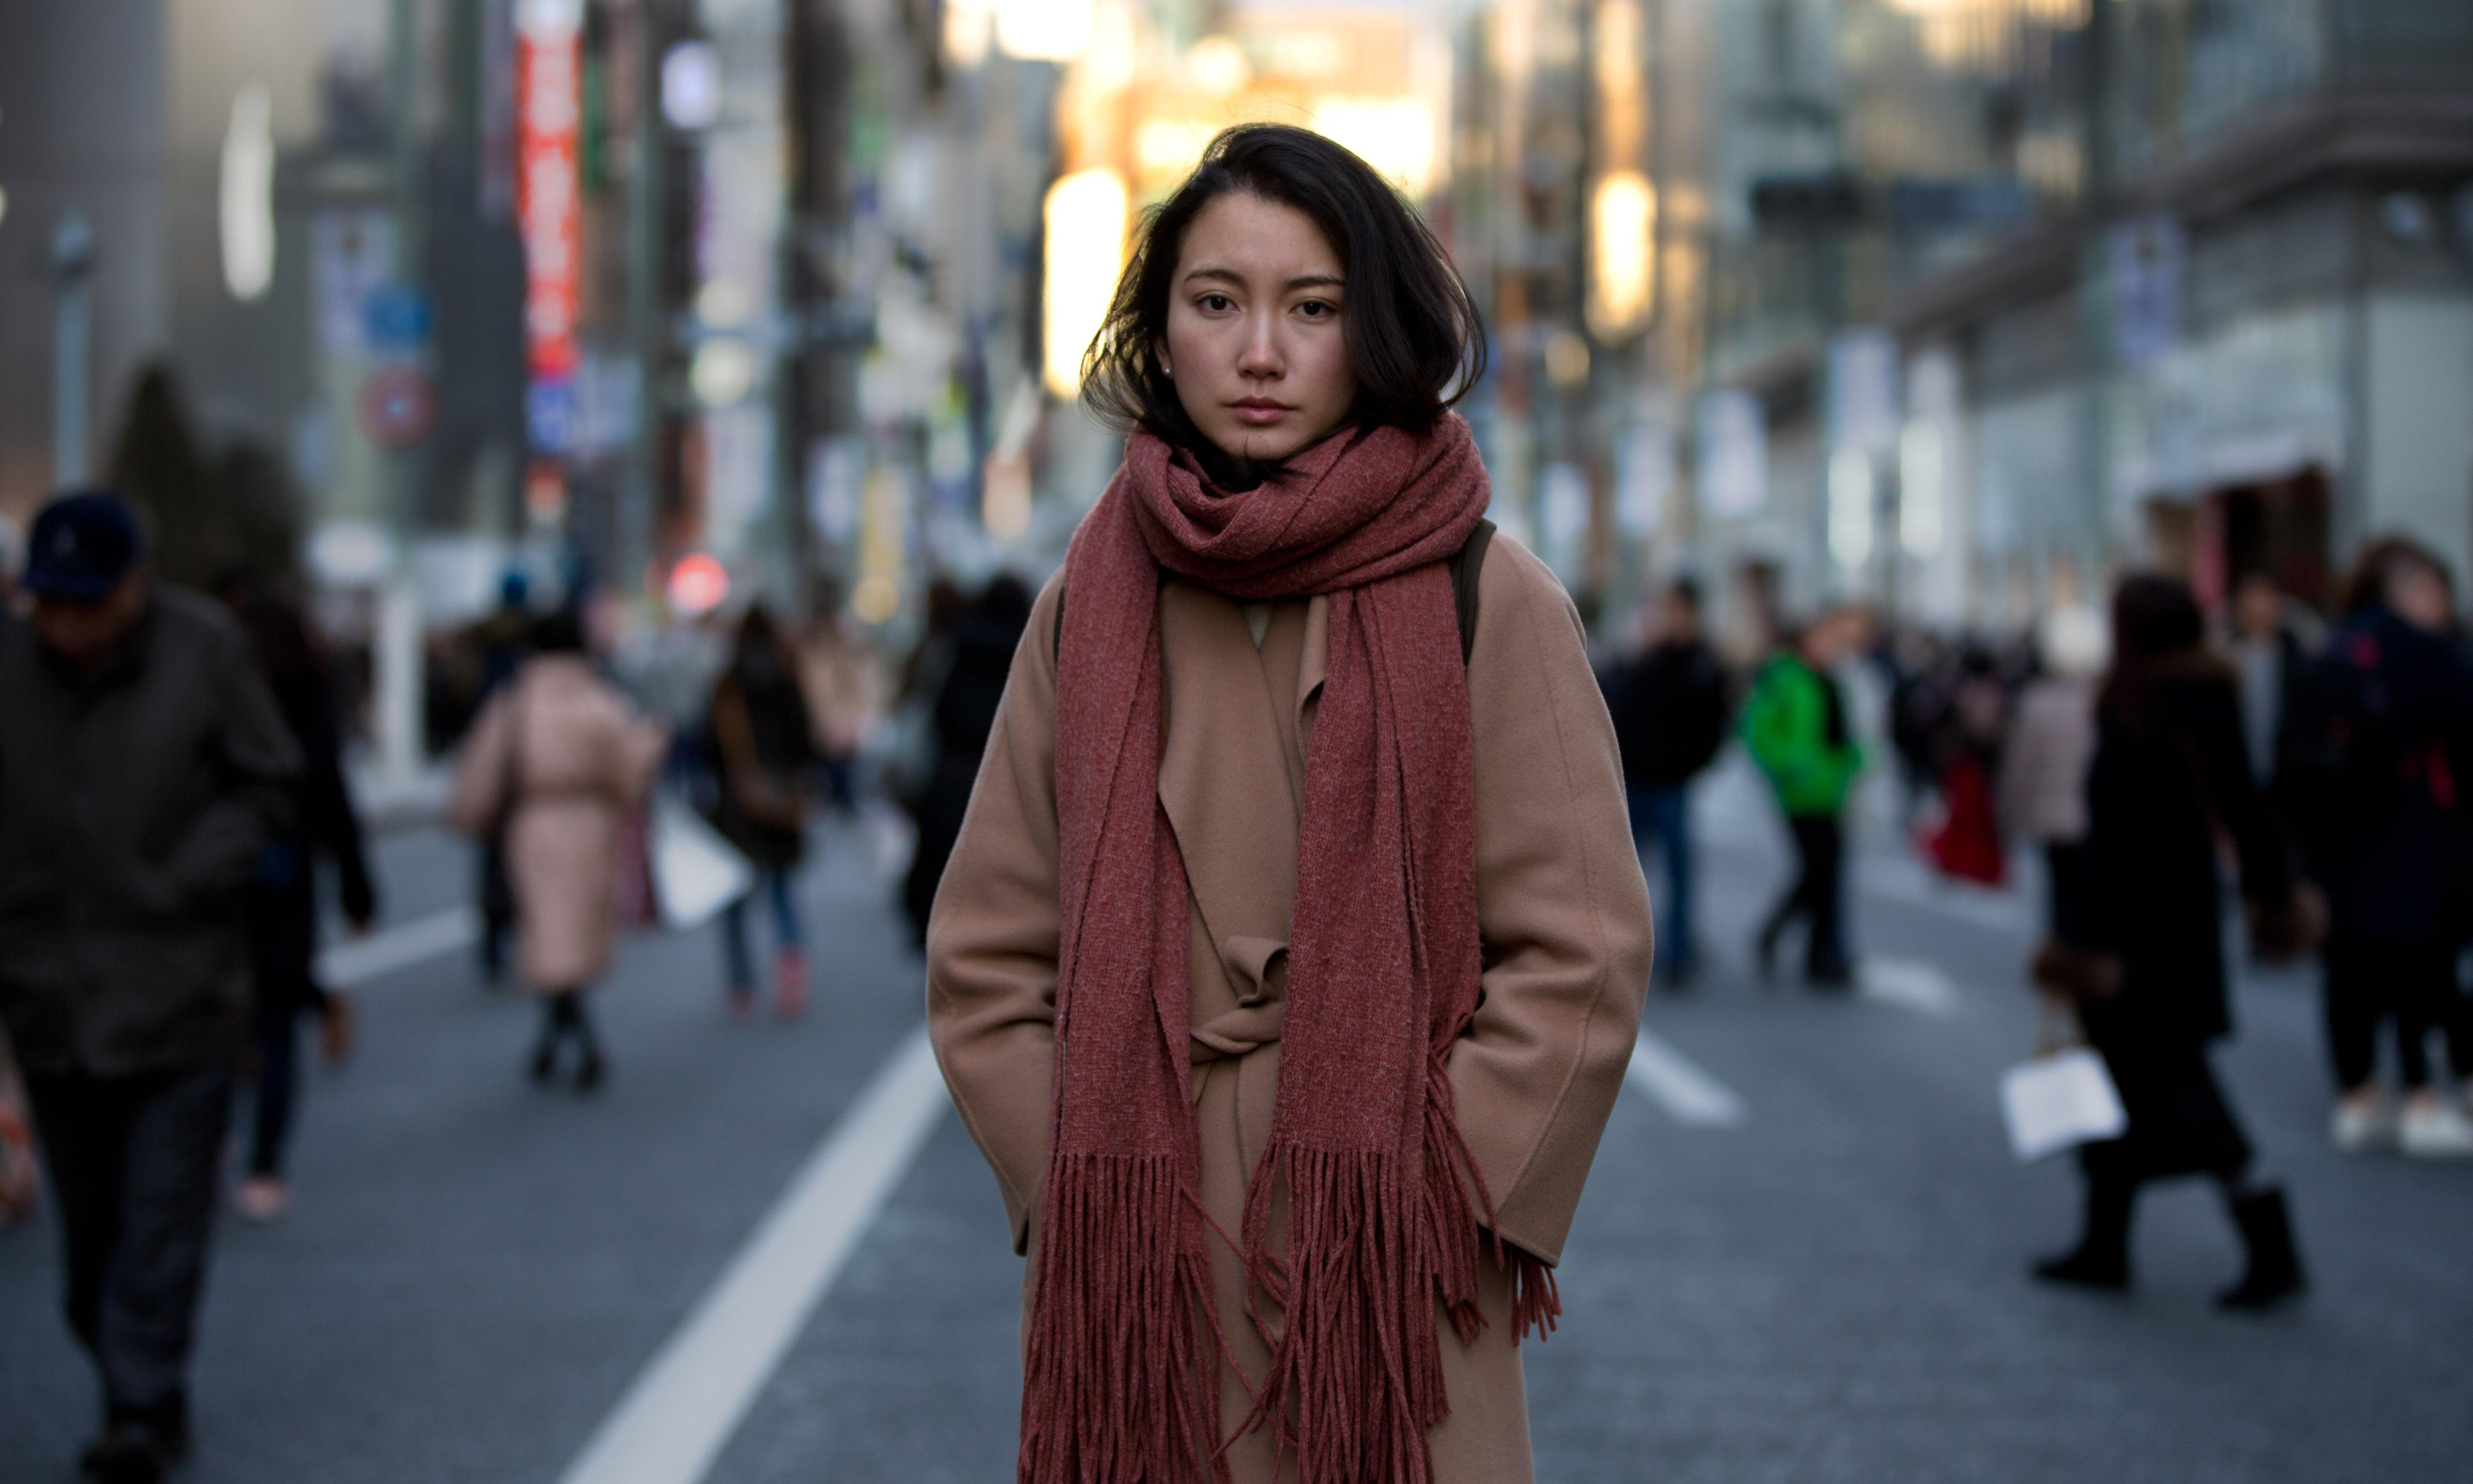 Japan's Secret Shame review - breaking a nation's taboo about rape